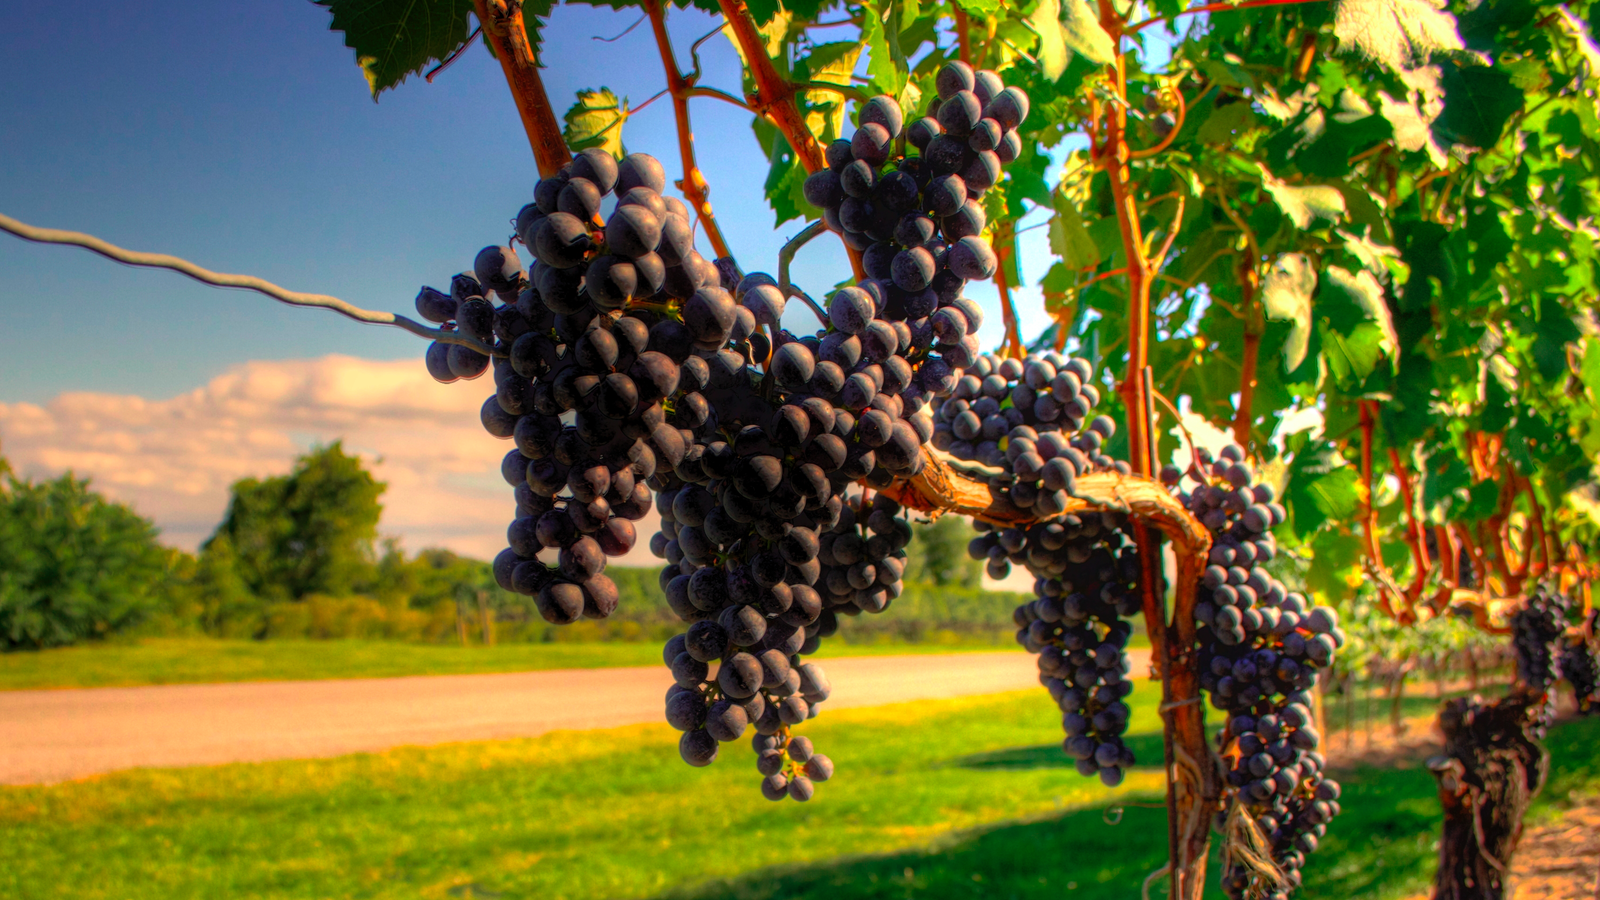 How The Great French Wine Blight Changed Grapes Forever